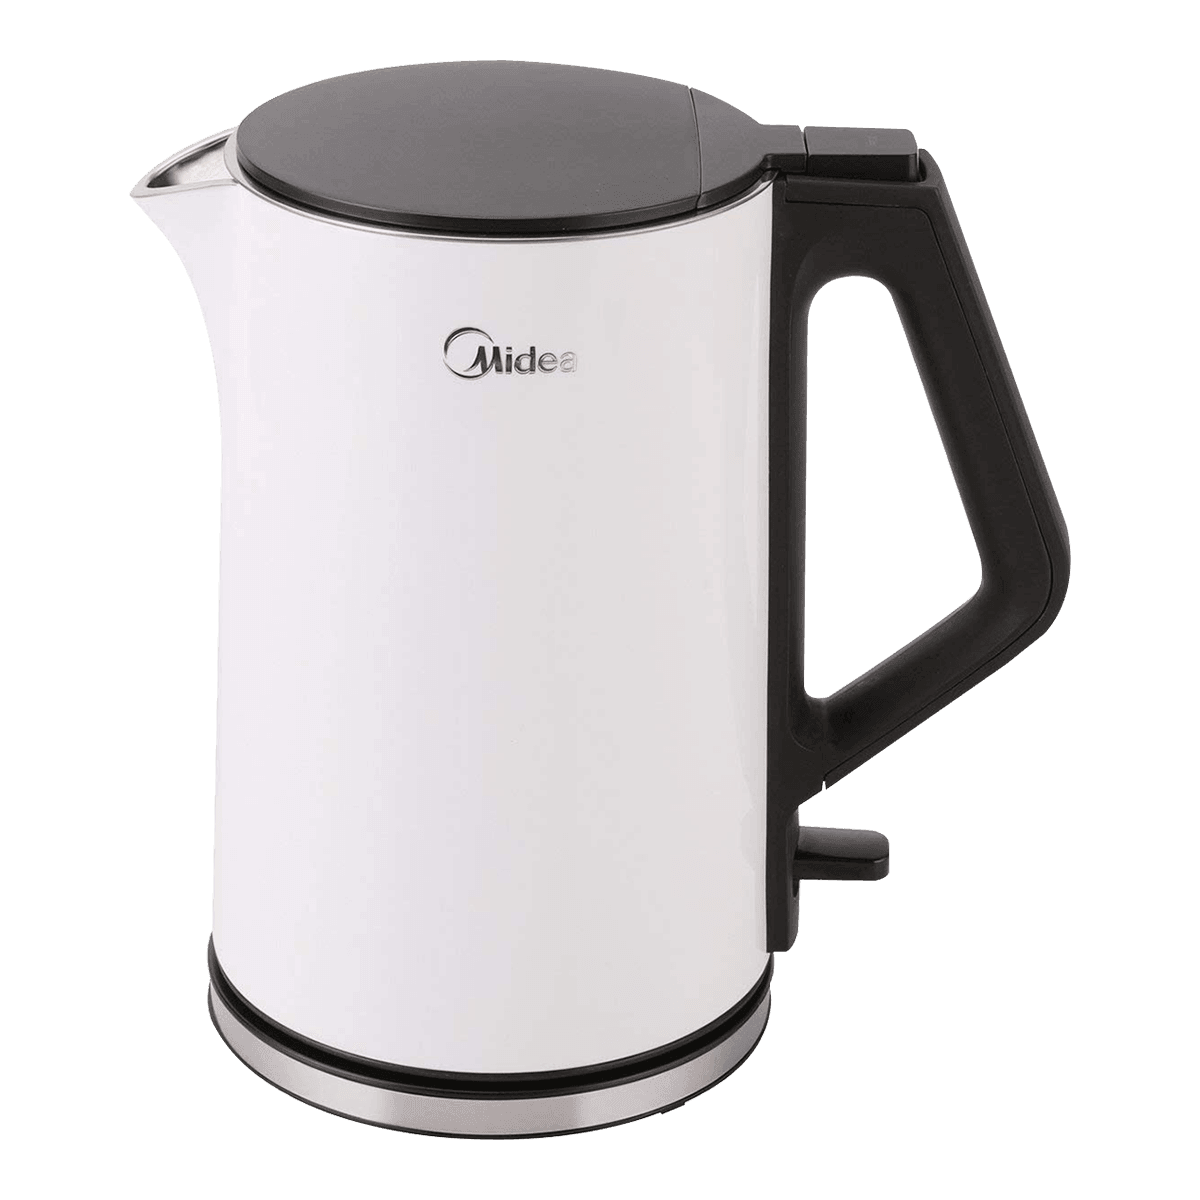 Midea Cool Touch Double Wall Electric Kettle White 1.5L MEK17DW-W